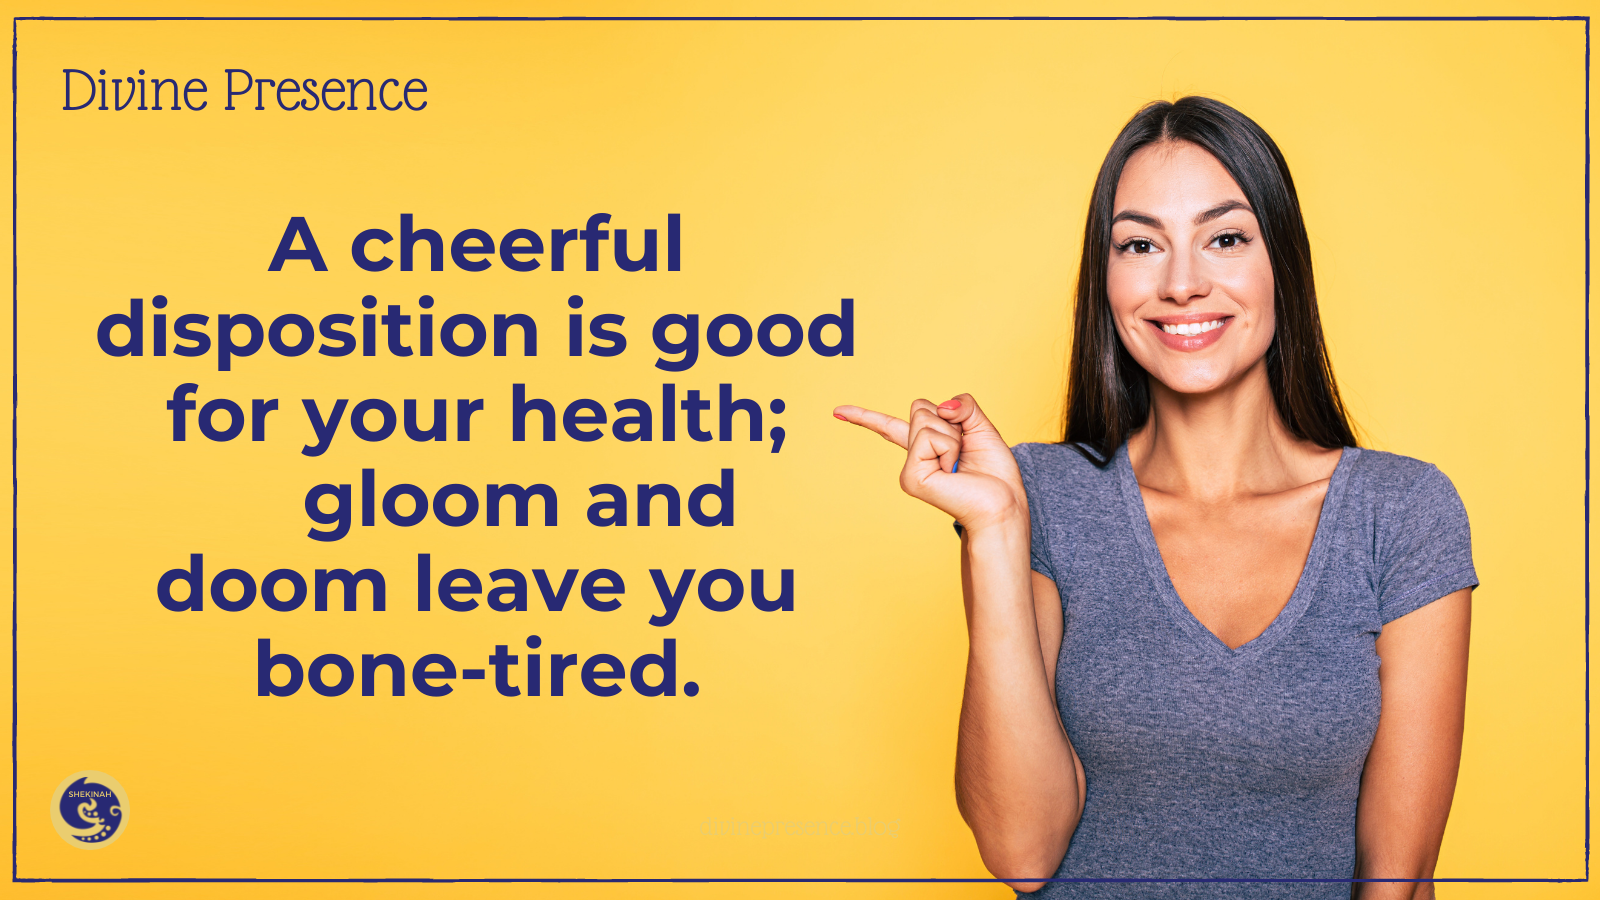 A cheerful disposition is good for your health, gloom and doom leave you bone-tired, a healthy life restored, why you need to go and sin no more